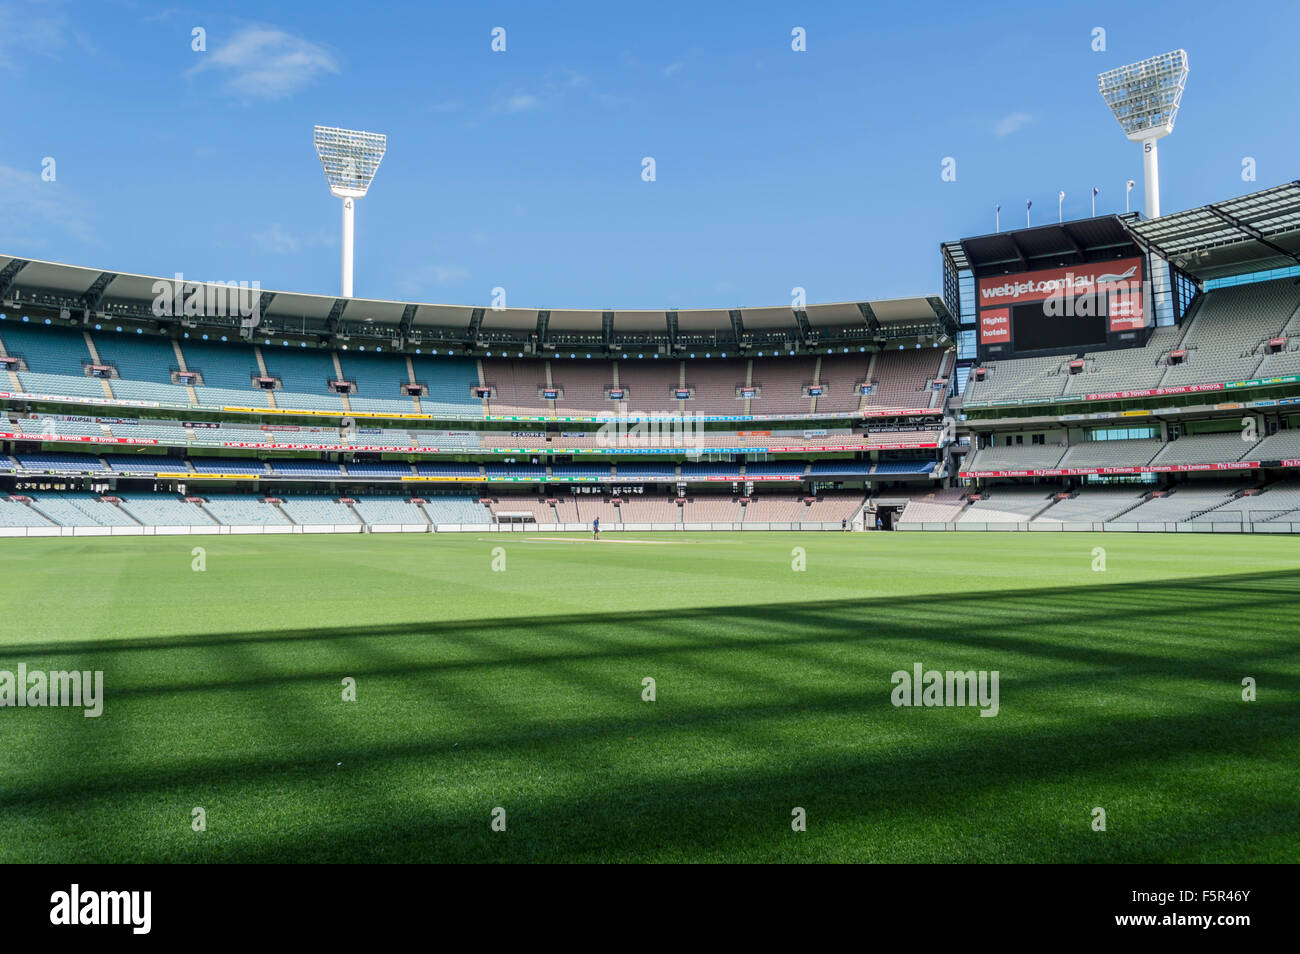 The Melbourne Cricket Ground (MCG) is an Australian sports stadium located in Yarra Park, Melbourne, Victoria, and - Stock Image